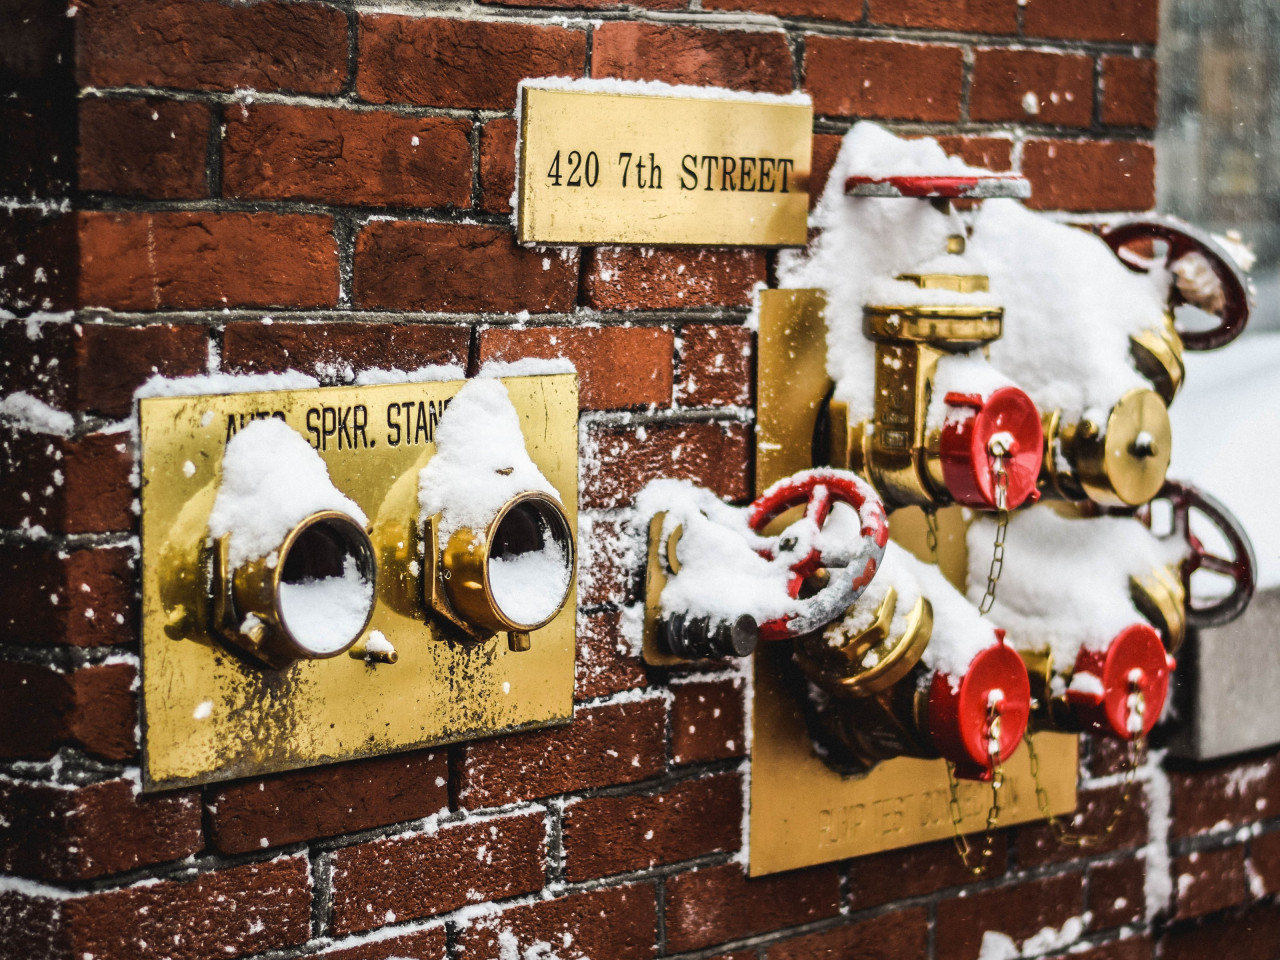 Snow covered fire standpipes in Washington | 1280x960 wallpaper